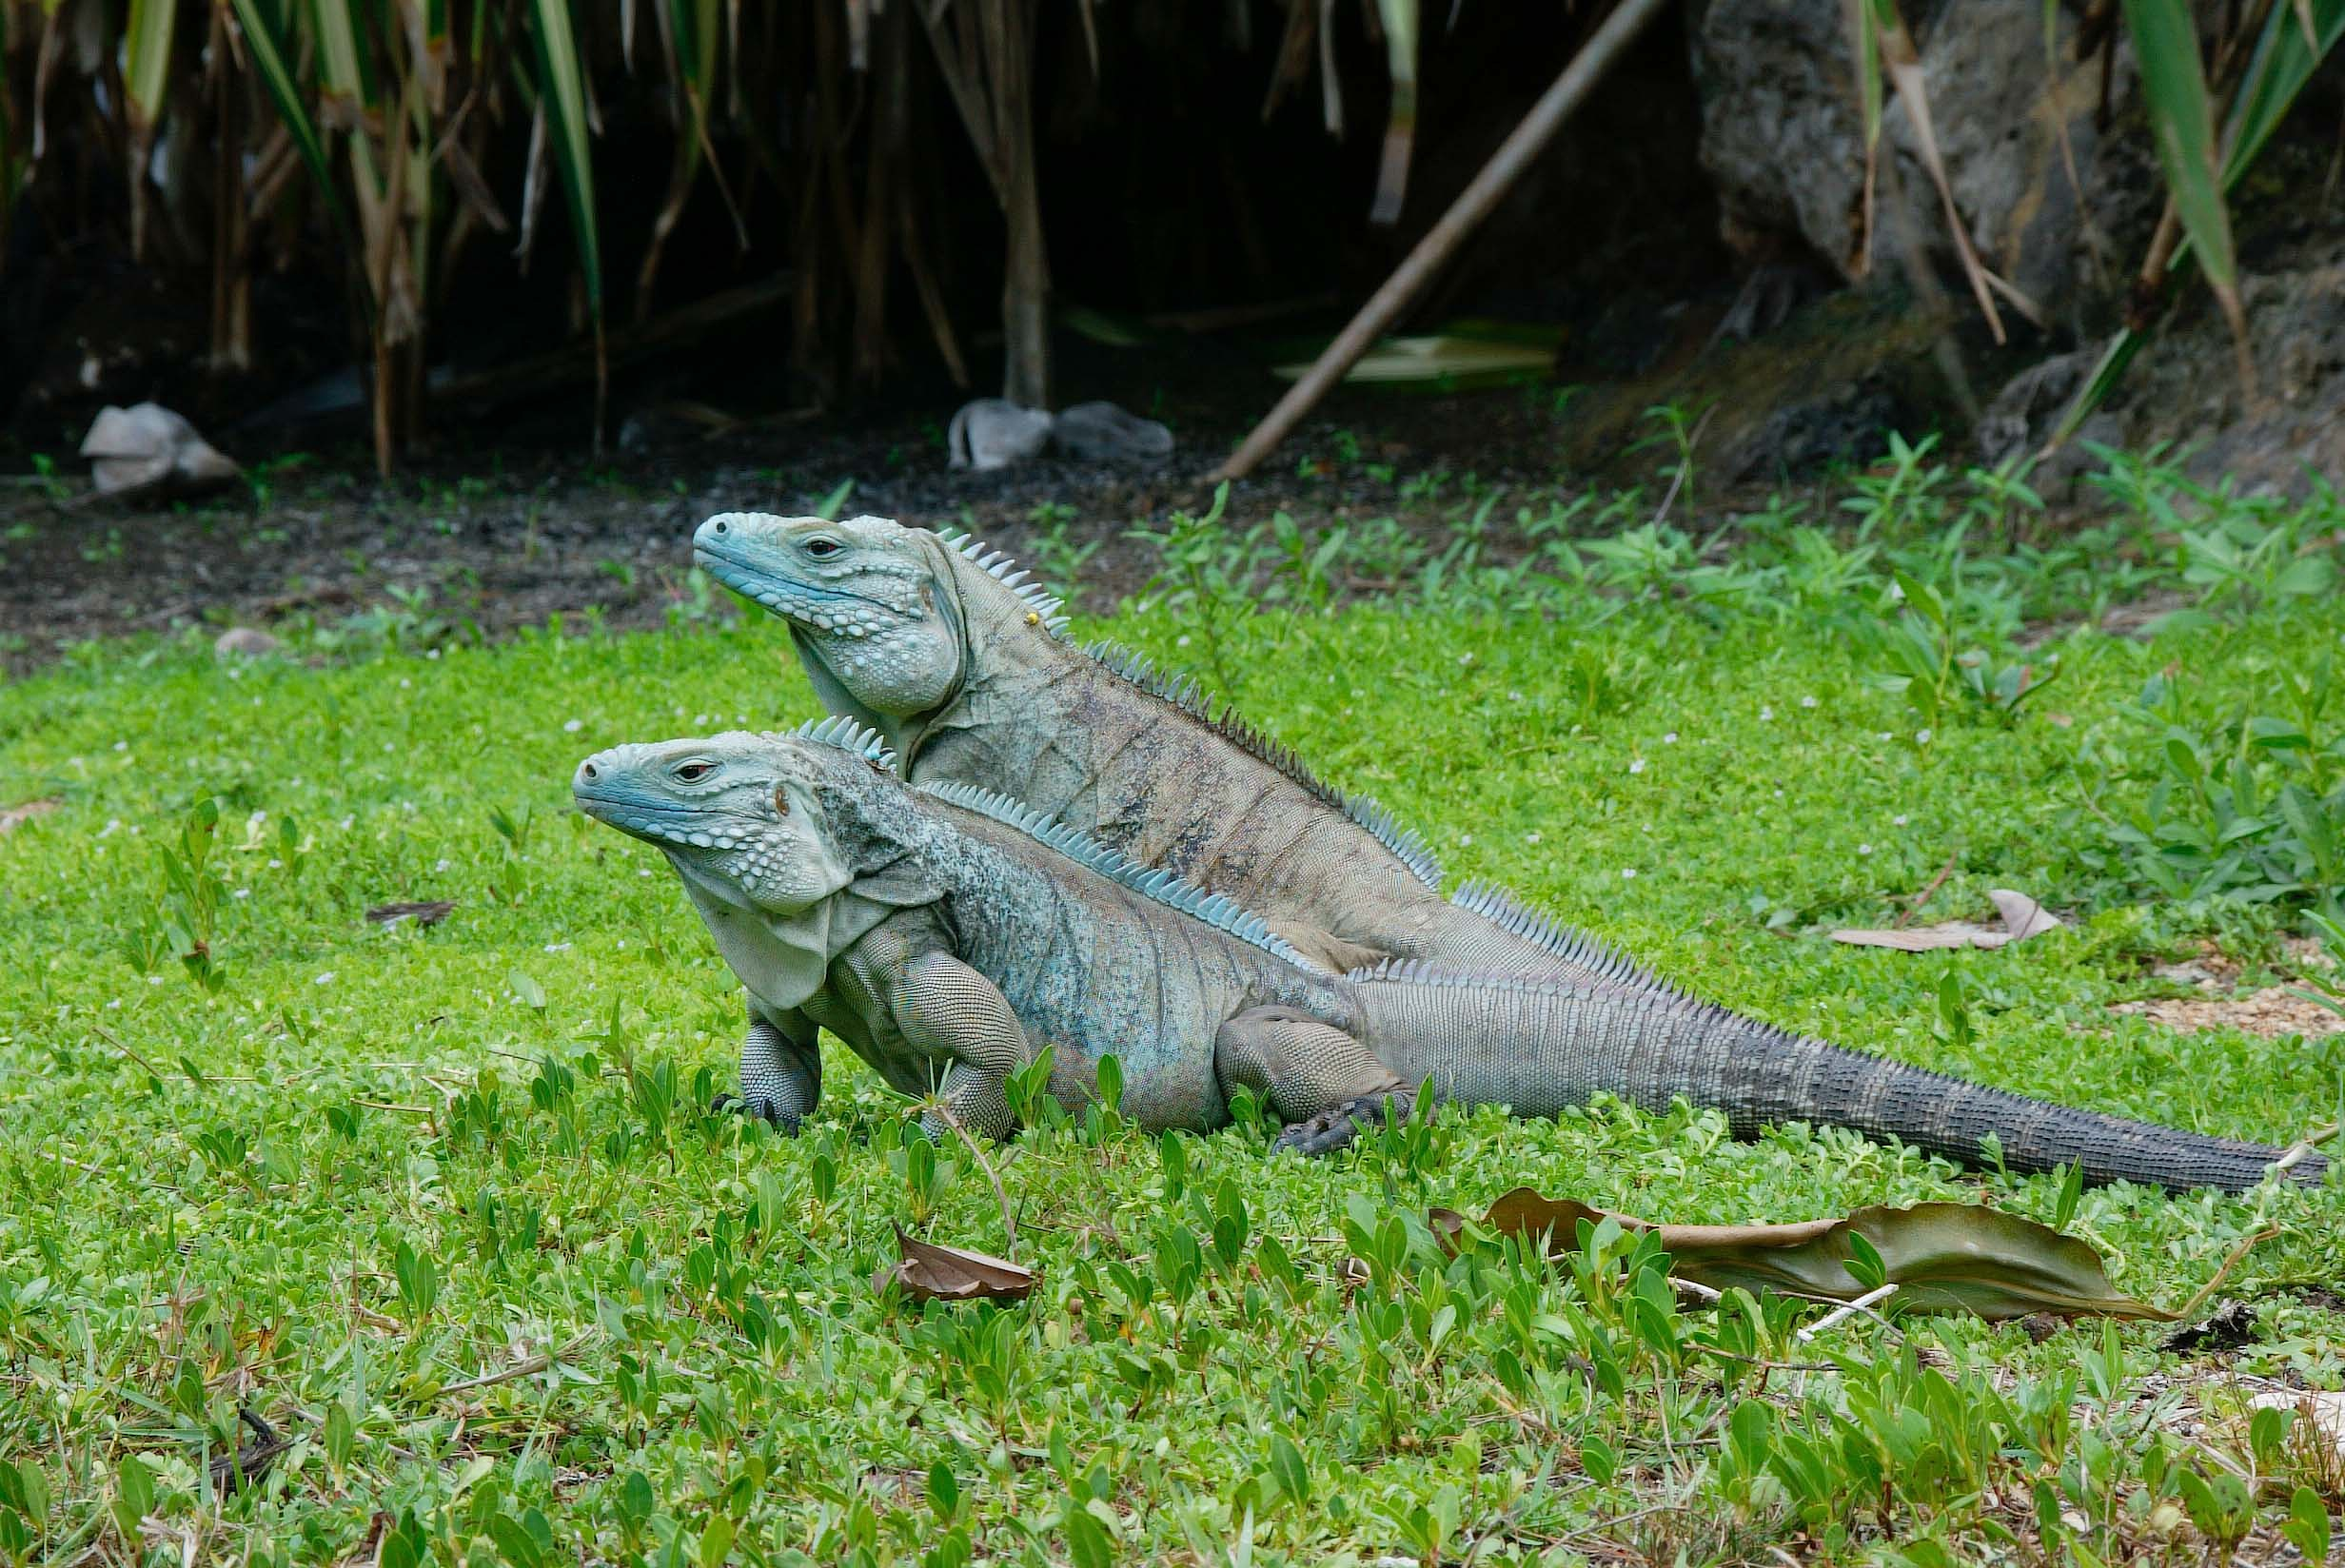 Blue Iguana For Sale : Blue iguana click to learn all about this species of iguana